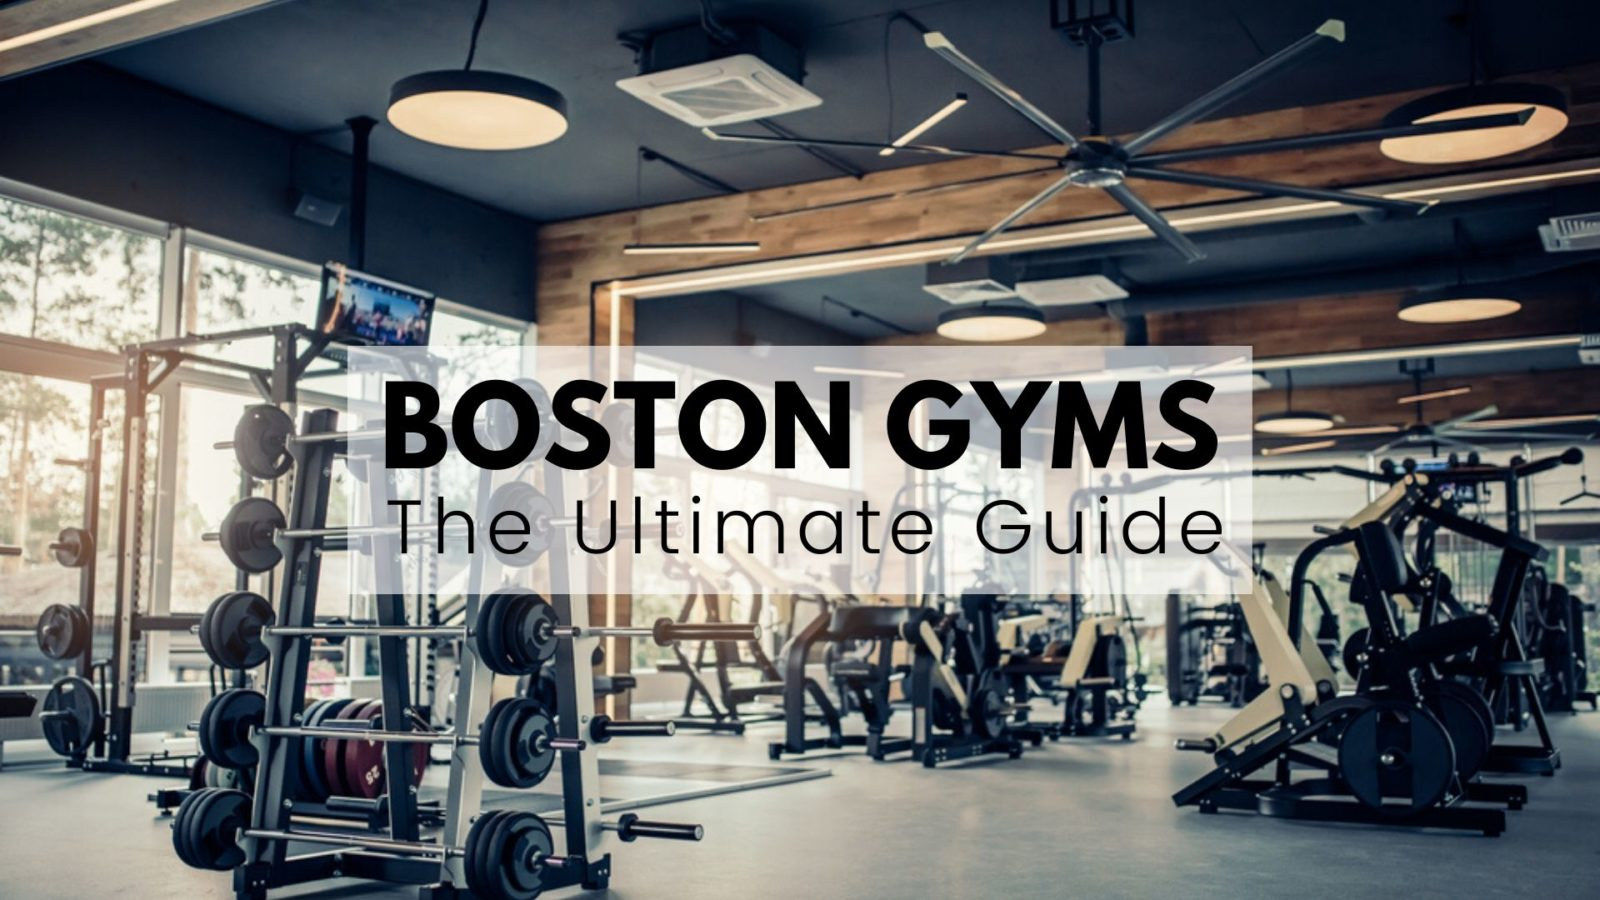 Boston Gyms - The Ultimate Guide